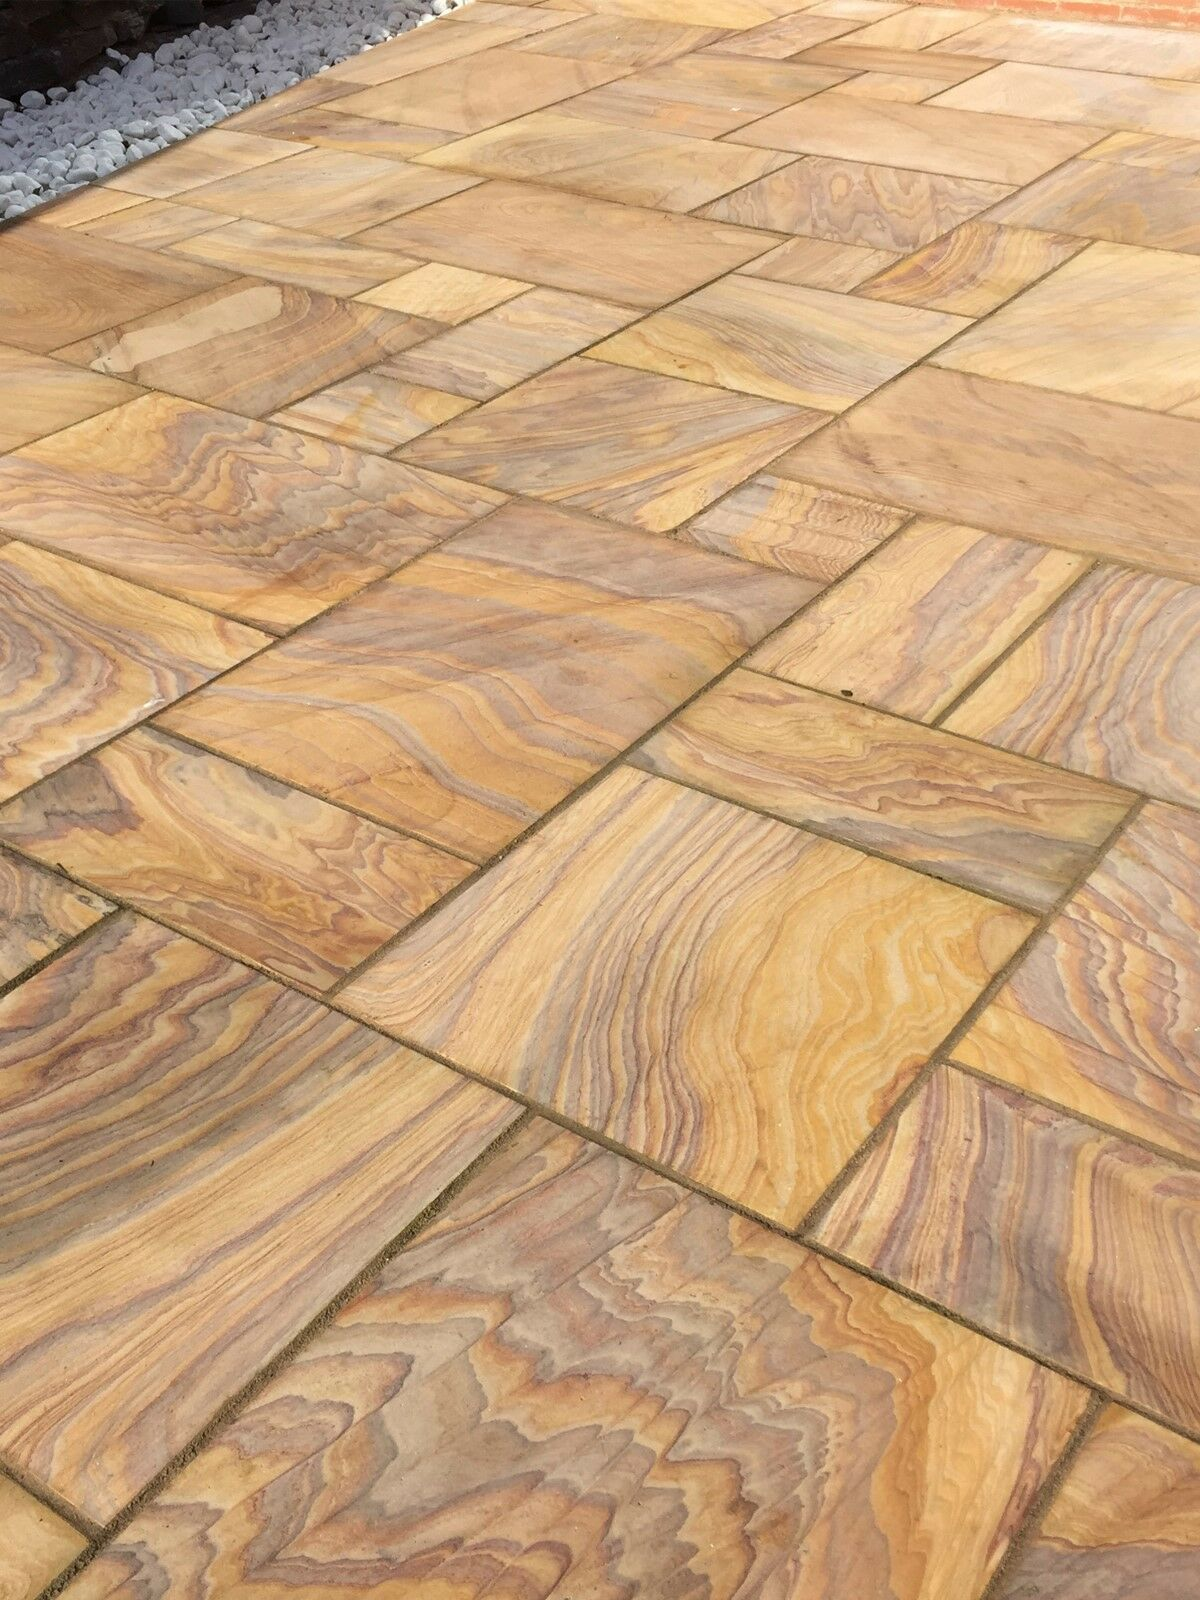 paving indian sandstone pictures - photo #34